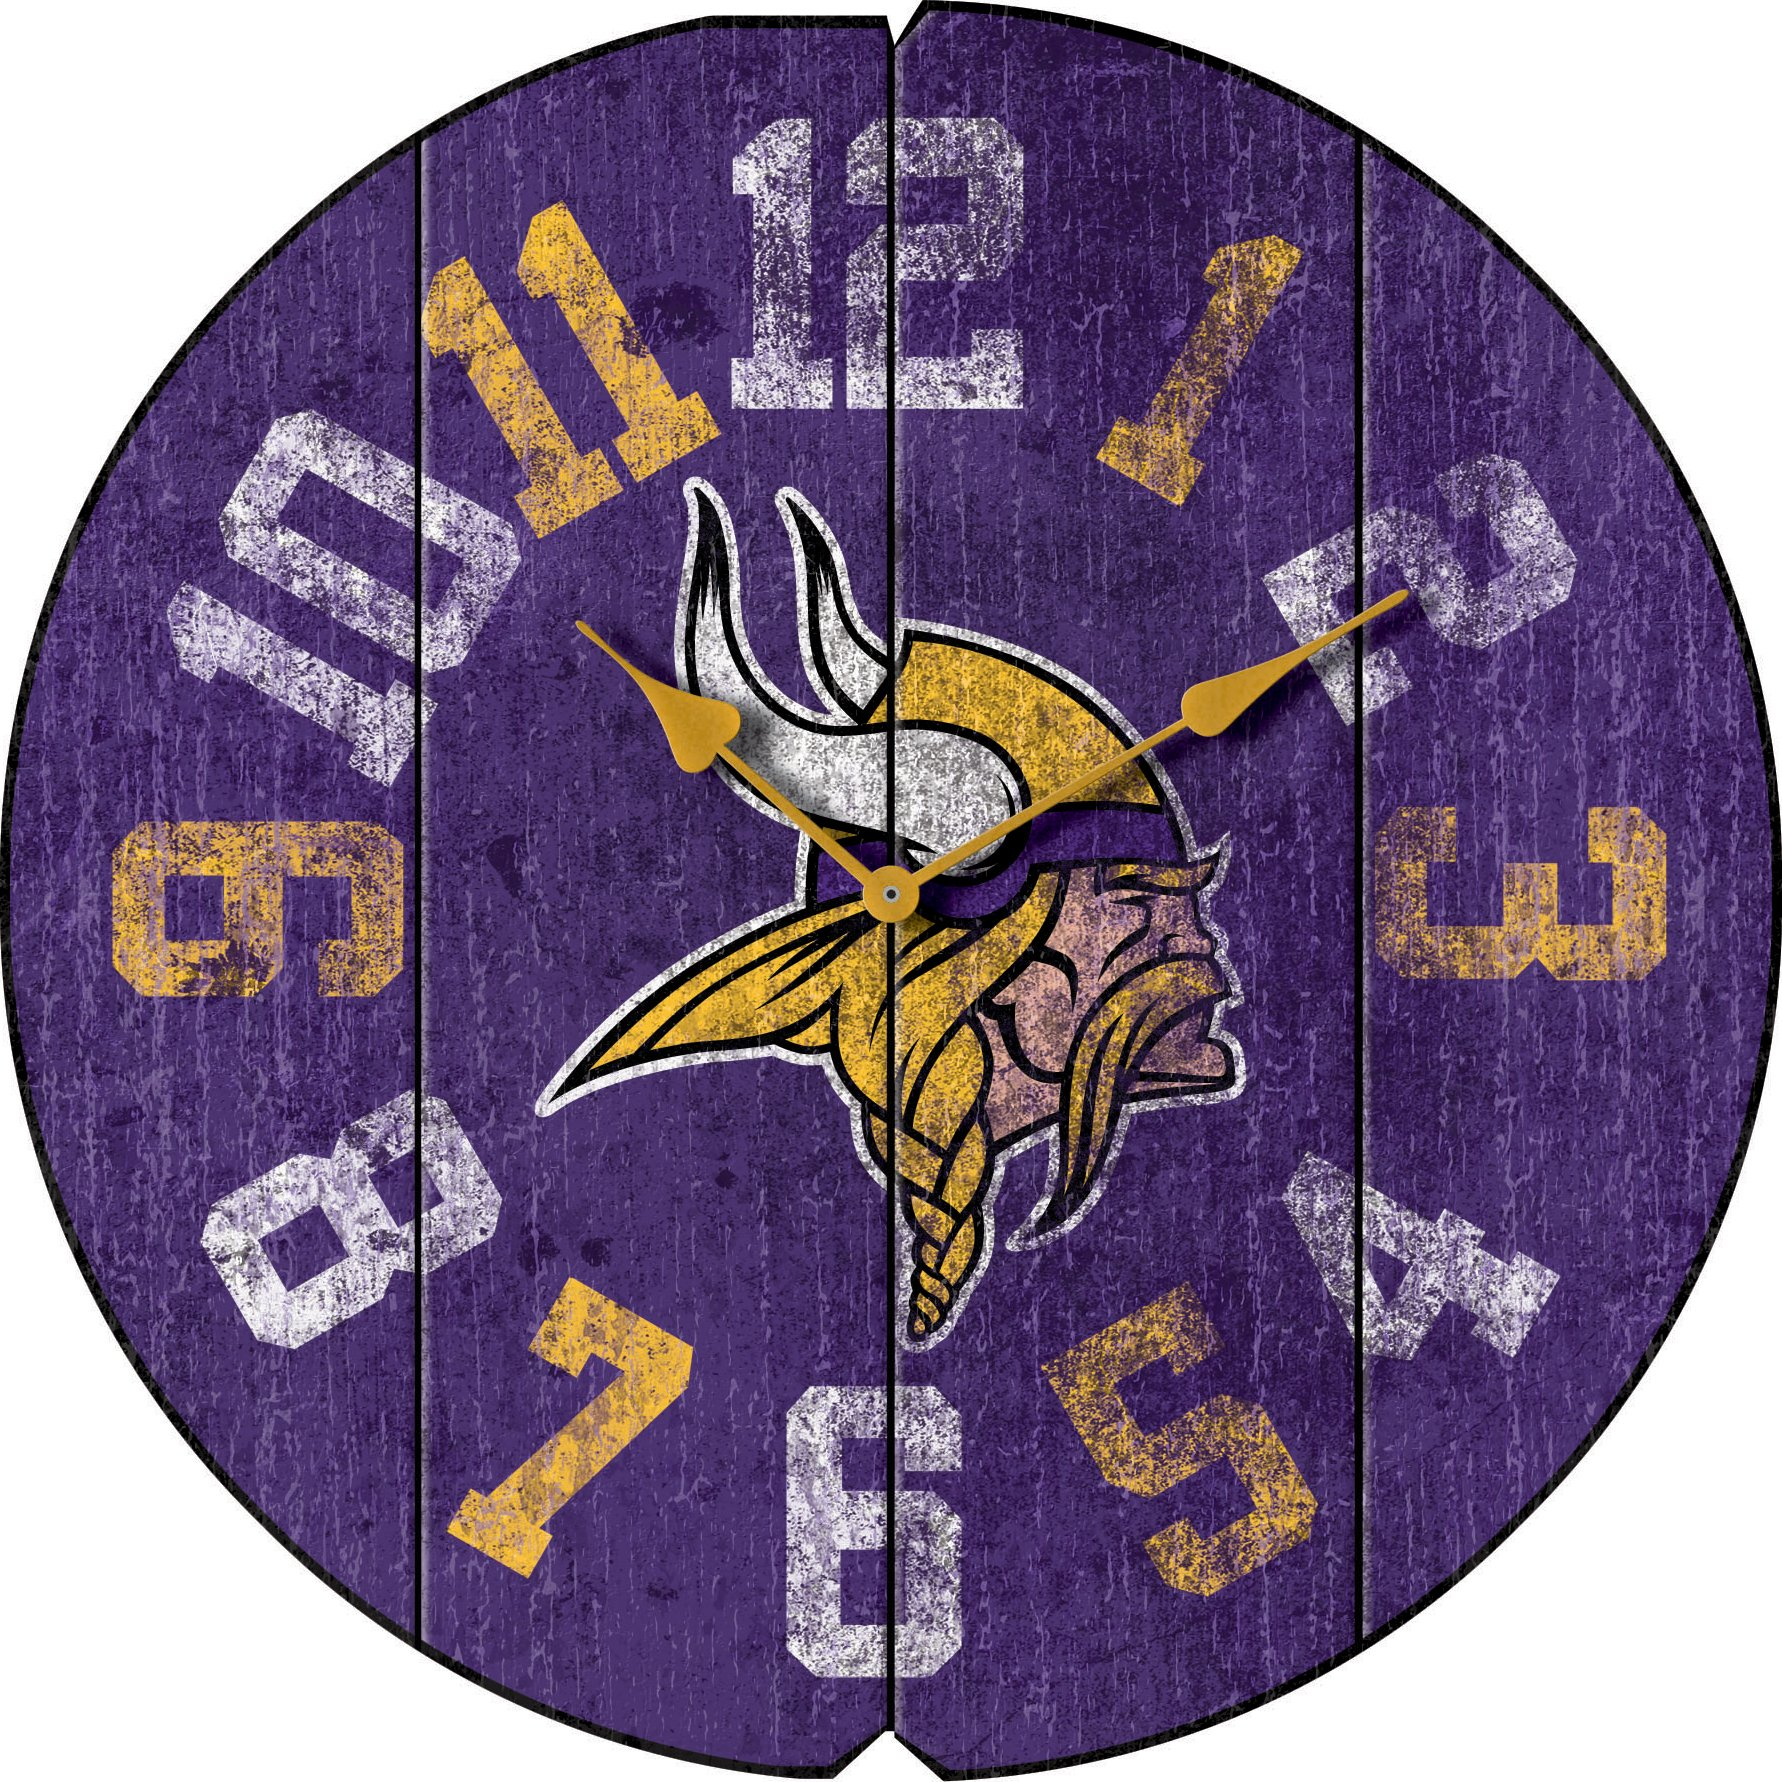 Imperial Officially Licensed NFL Merchandise: Vintage Round Clock, Minnesota Vikings by Imperial